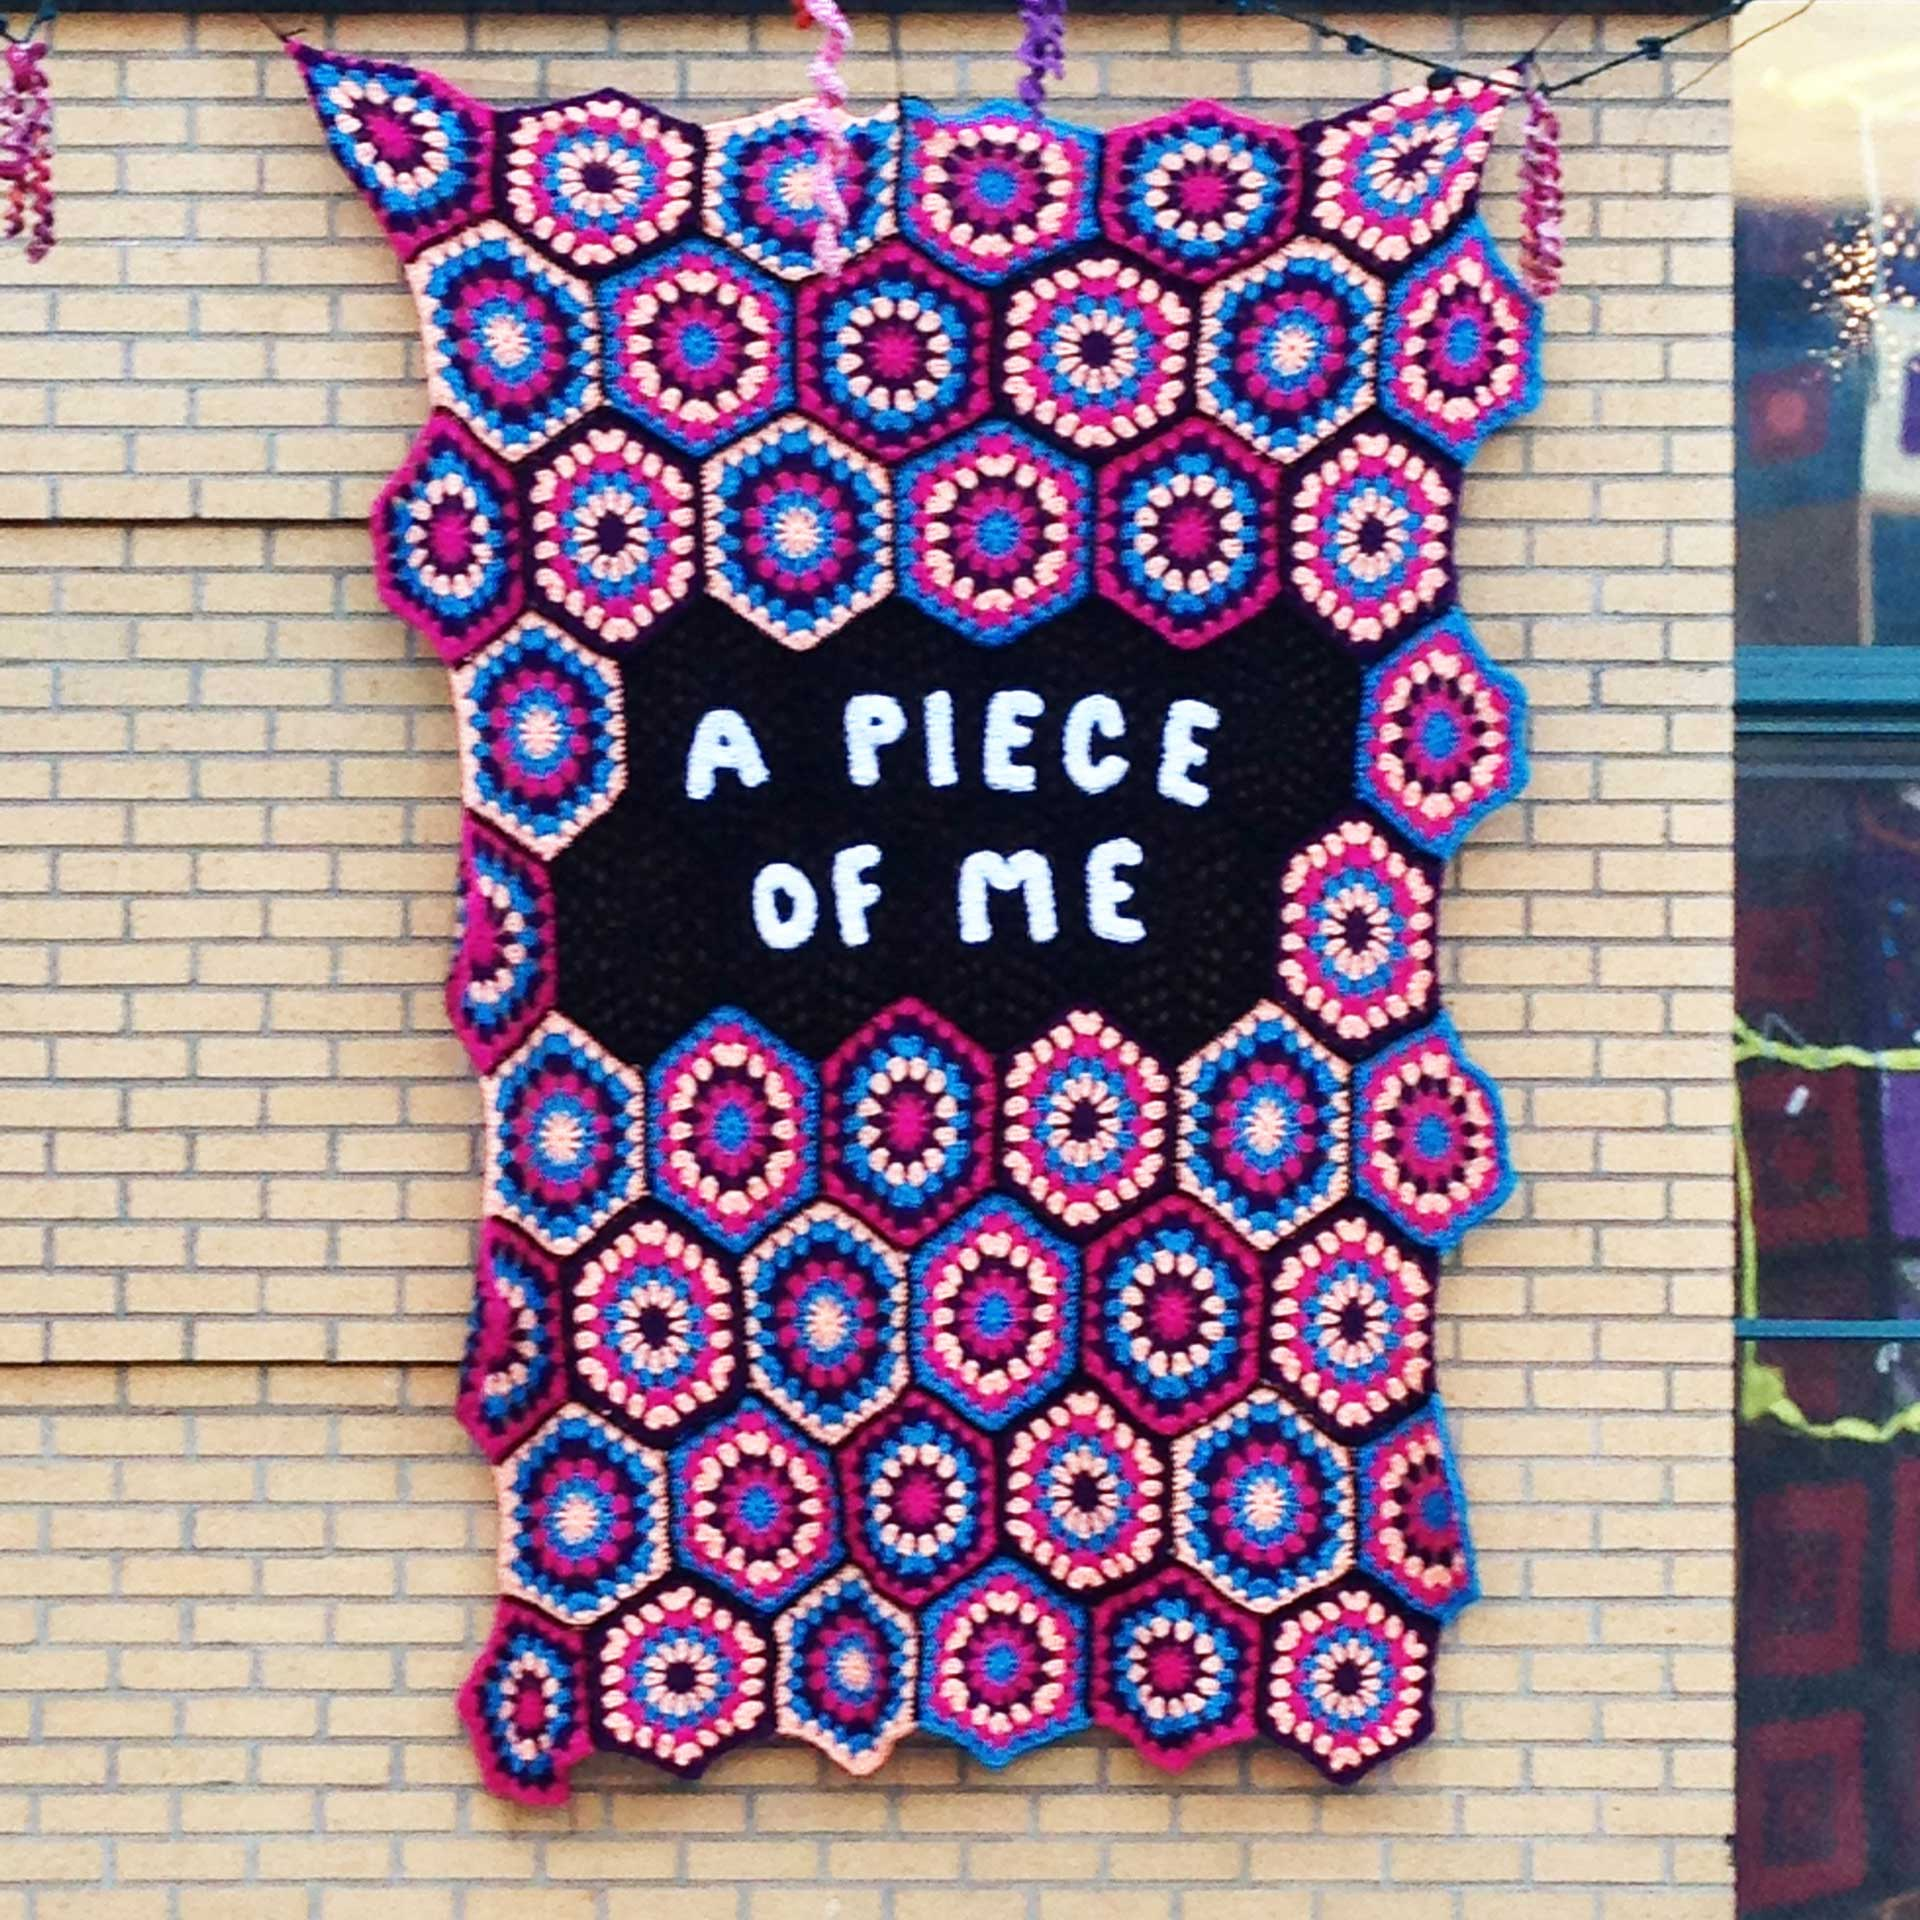 """A Piece Of Me, 2017, 88"""" h x 16"""" w x 1/4"""" d, Namesake Installation in Dunning Courtyard in conjunction with New Threads: Perspectives in Contemporary Fiber Art at Laband Art Gallery, Los Angeles, CA. A Piece Of Me - Art is a piece of someone's heart and soul. A self-expression left behind. What impact will you have on the world? What will you leave behind?"""